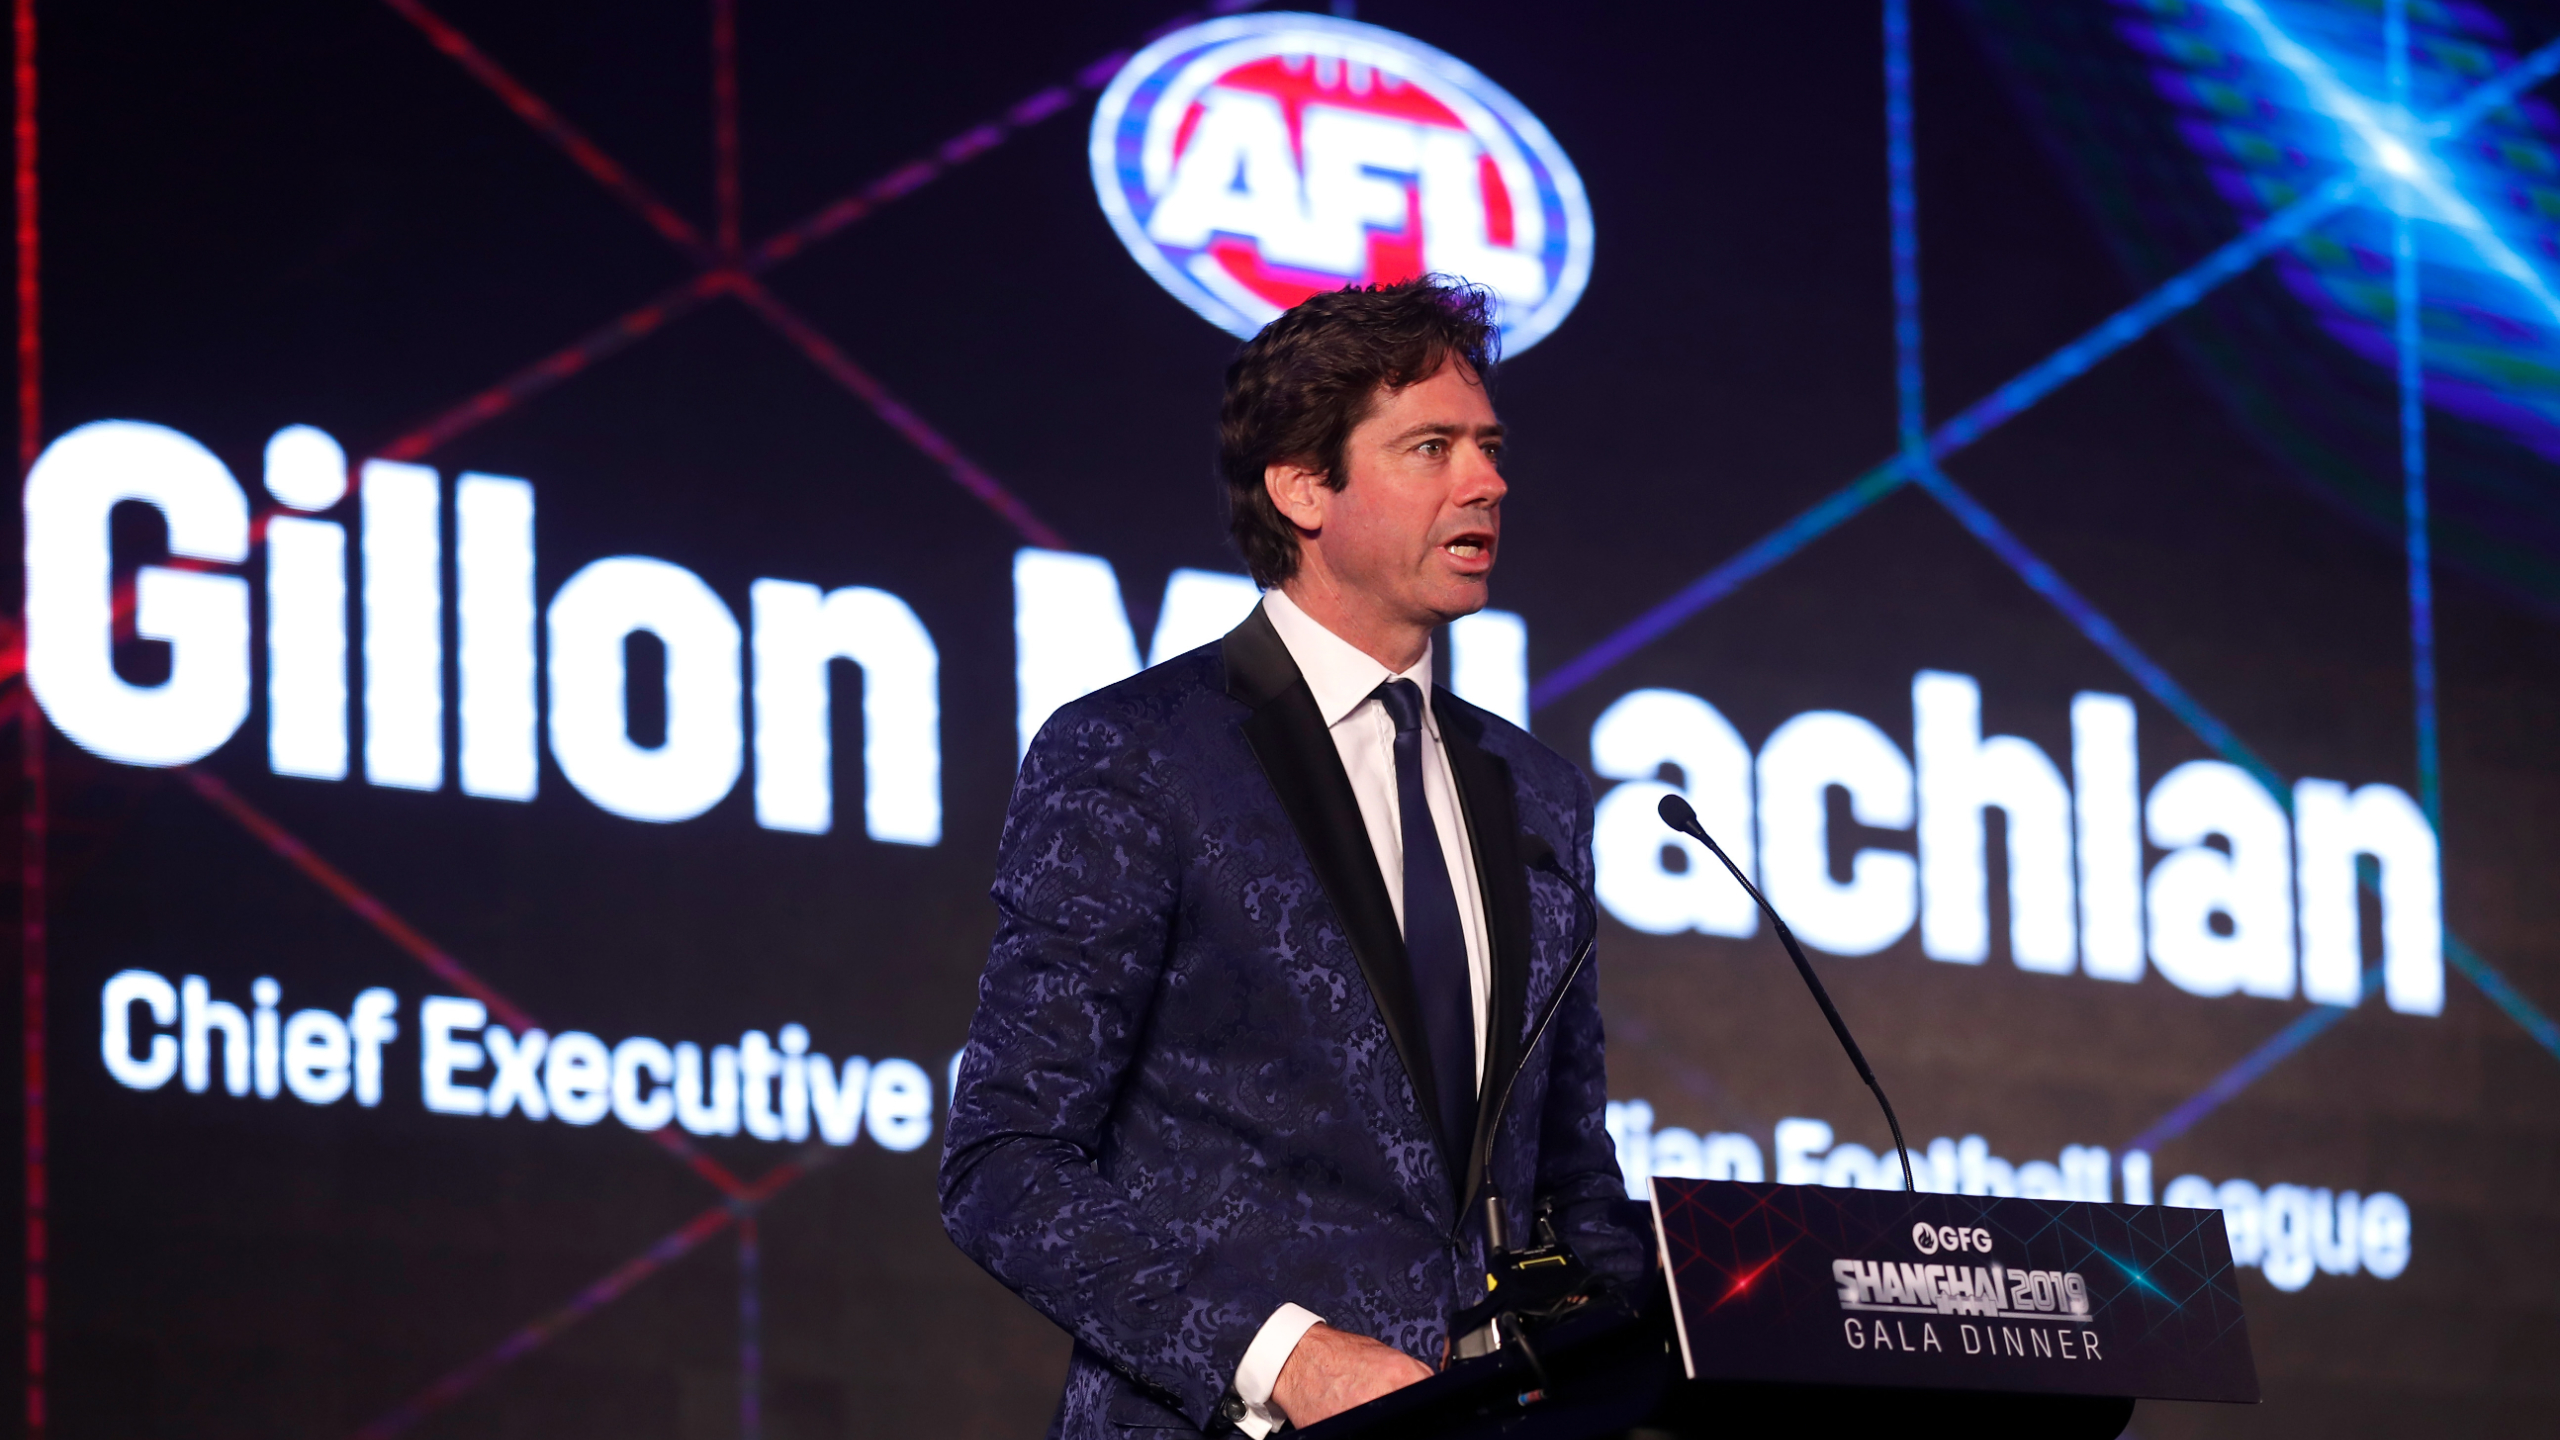 AFL CEO Gillon McLachlan is prepared to consider reducing the length of the AFL season